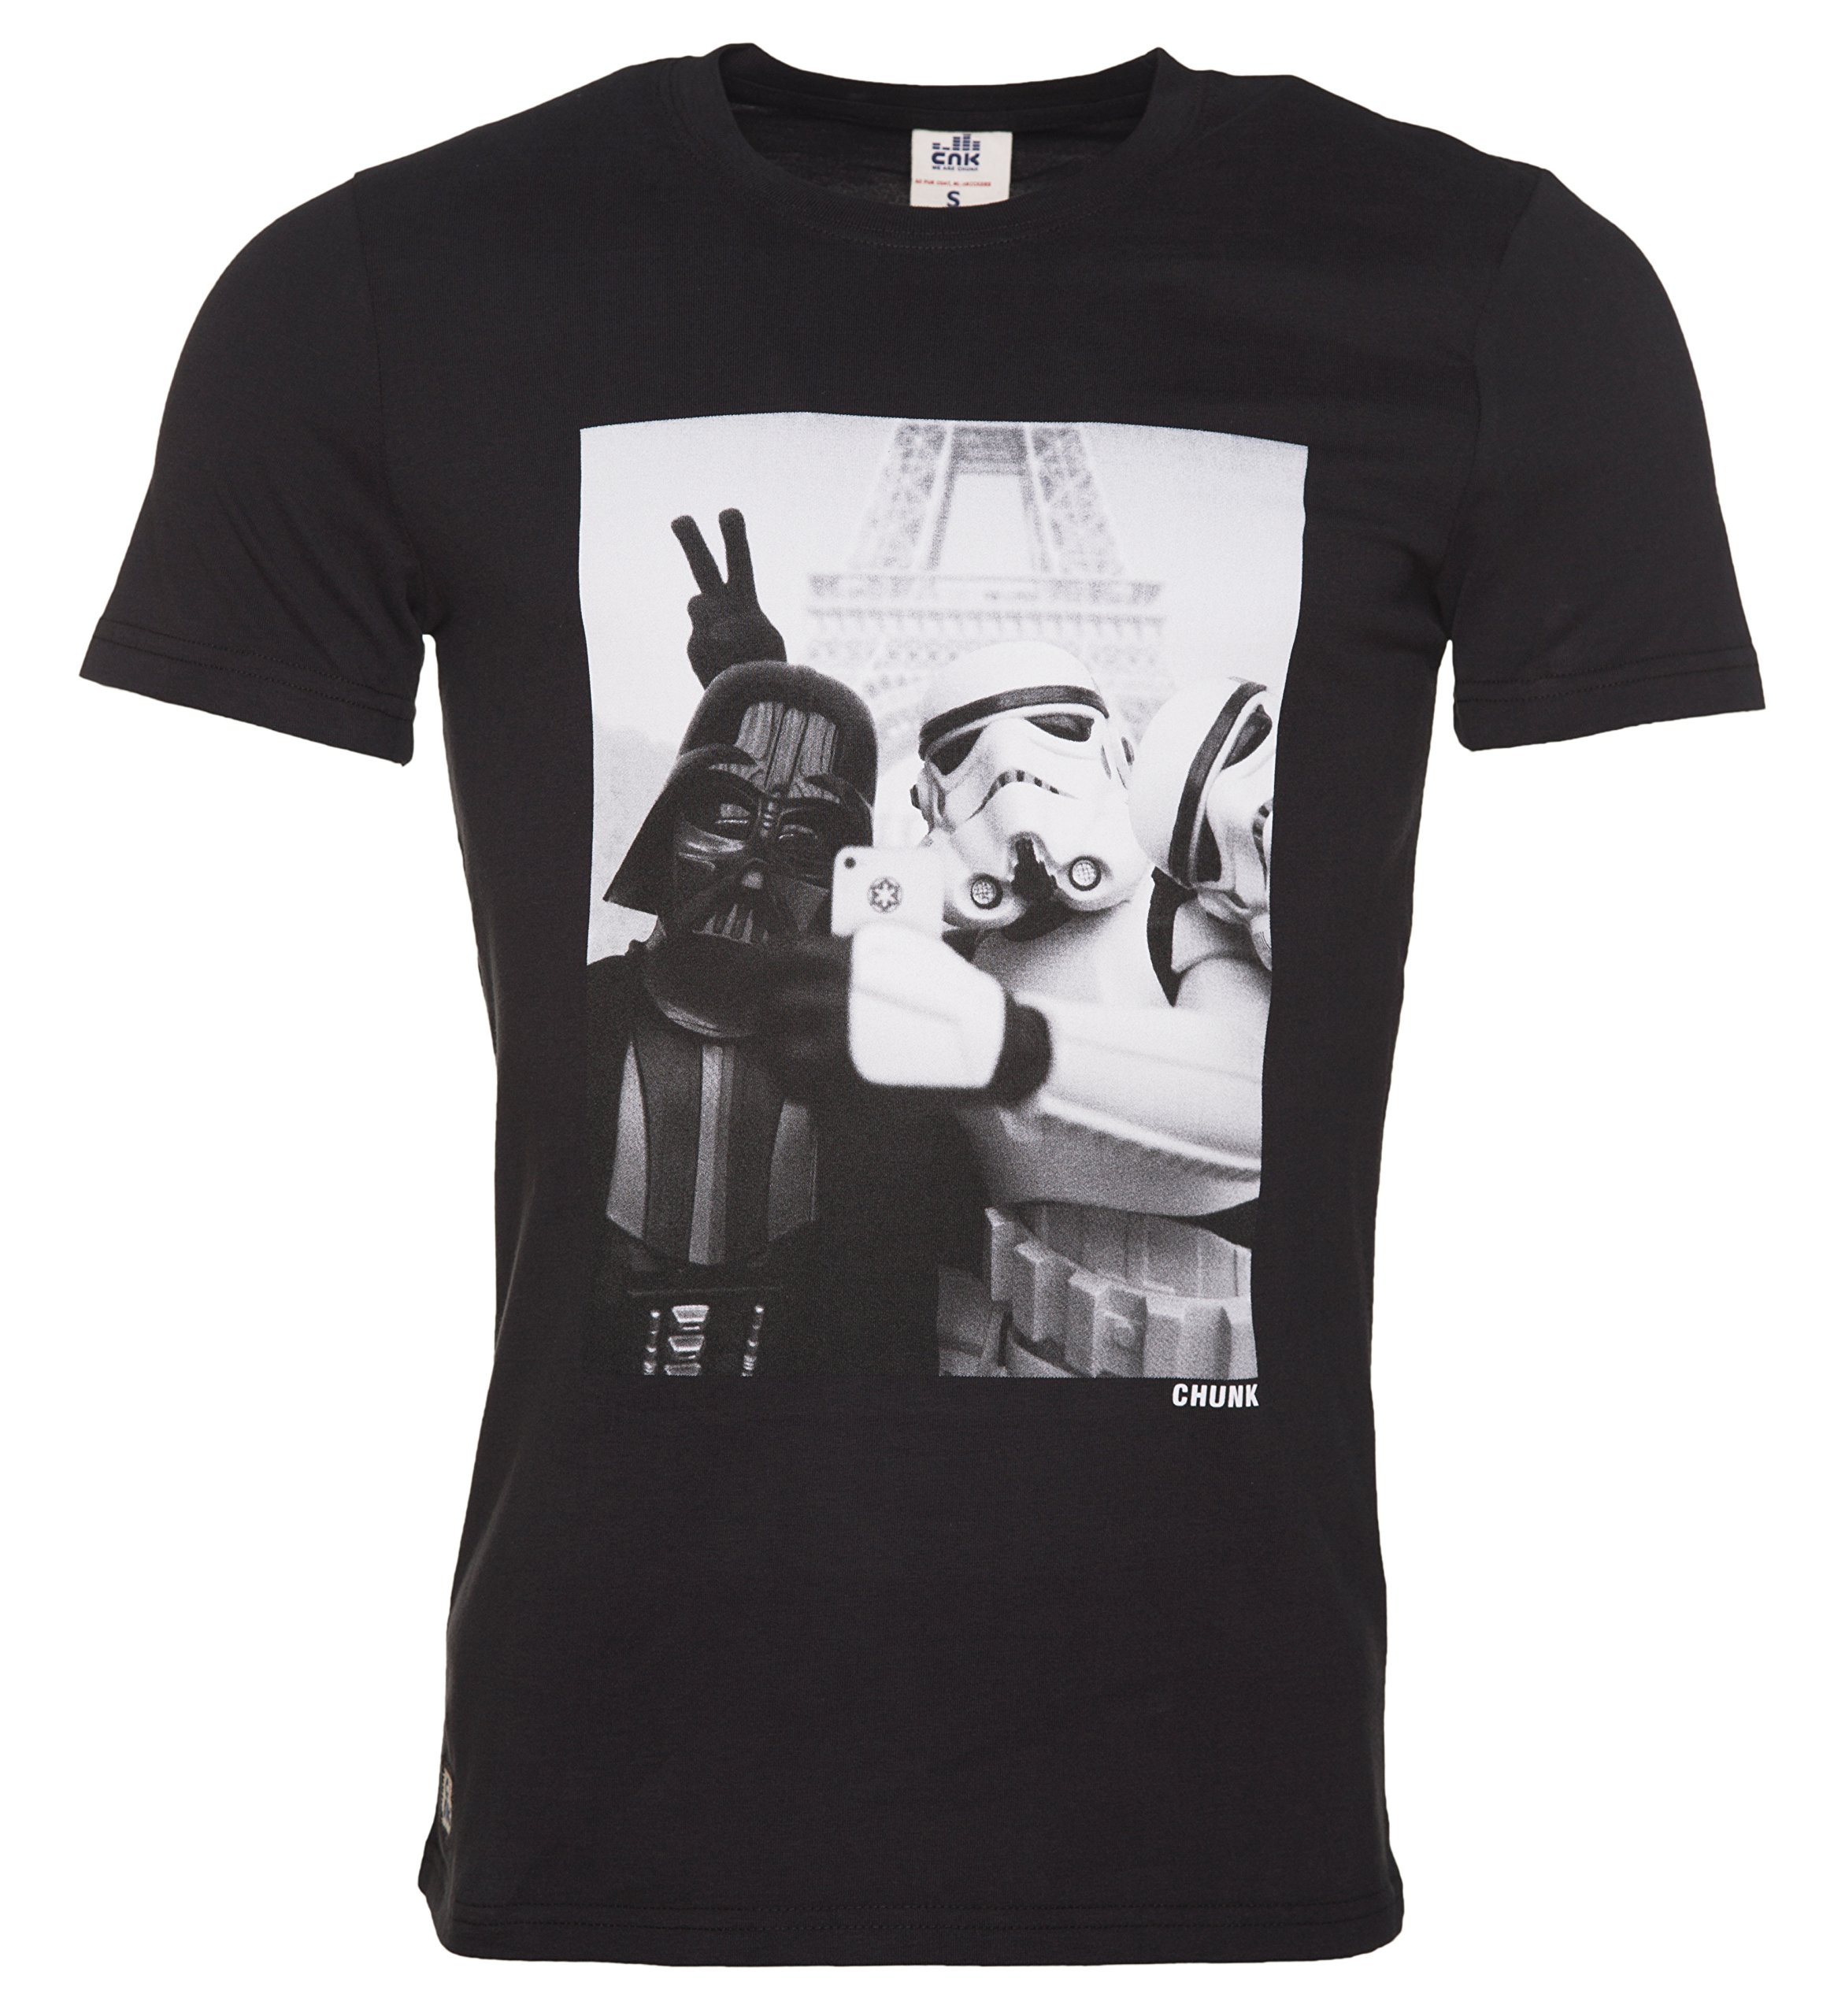 Chunk S Black Stormtrooper And Darth Vader Selfie Star Wars T Shirt From